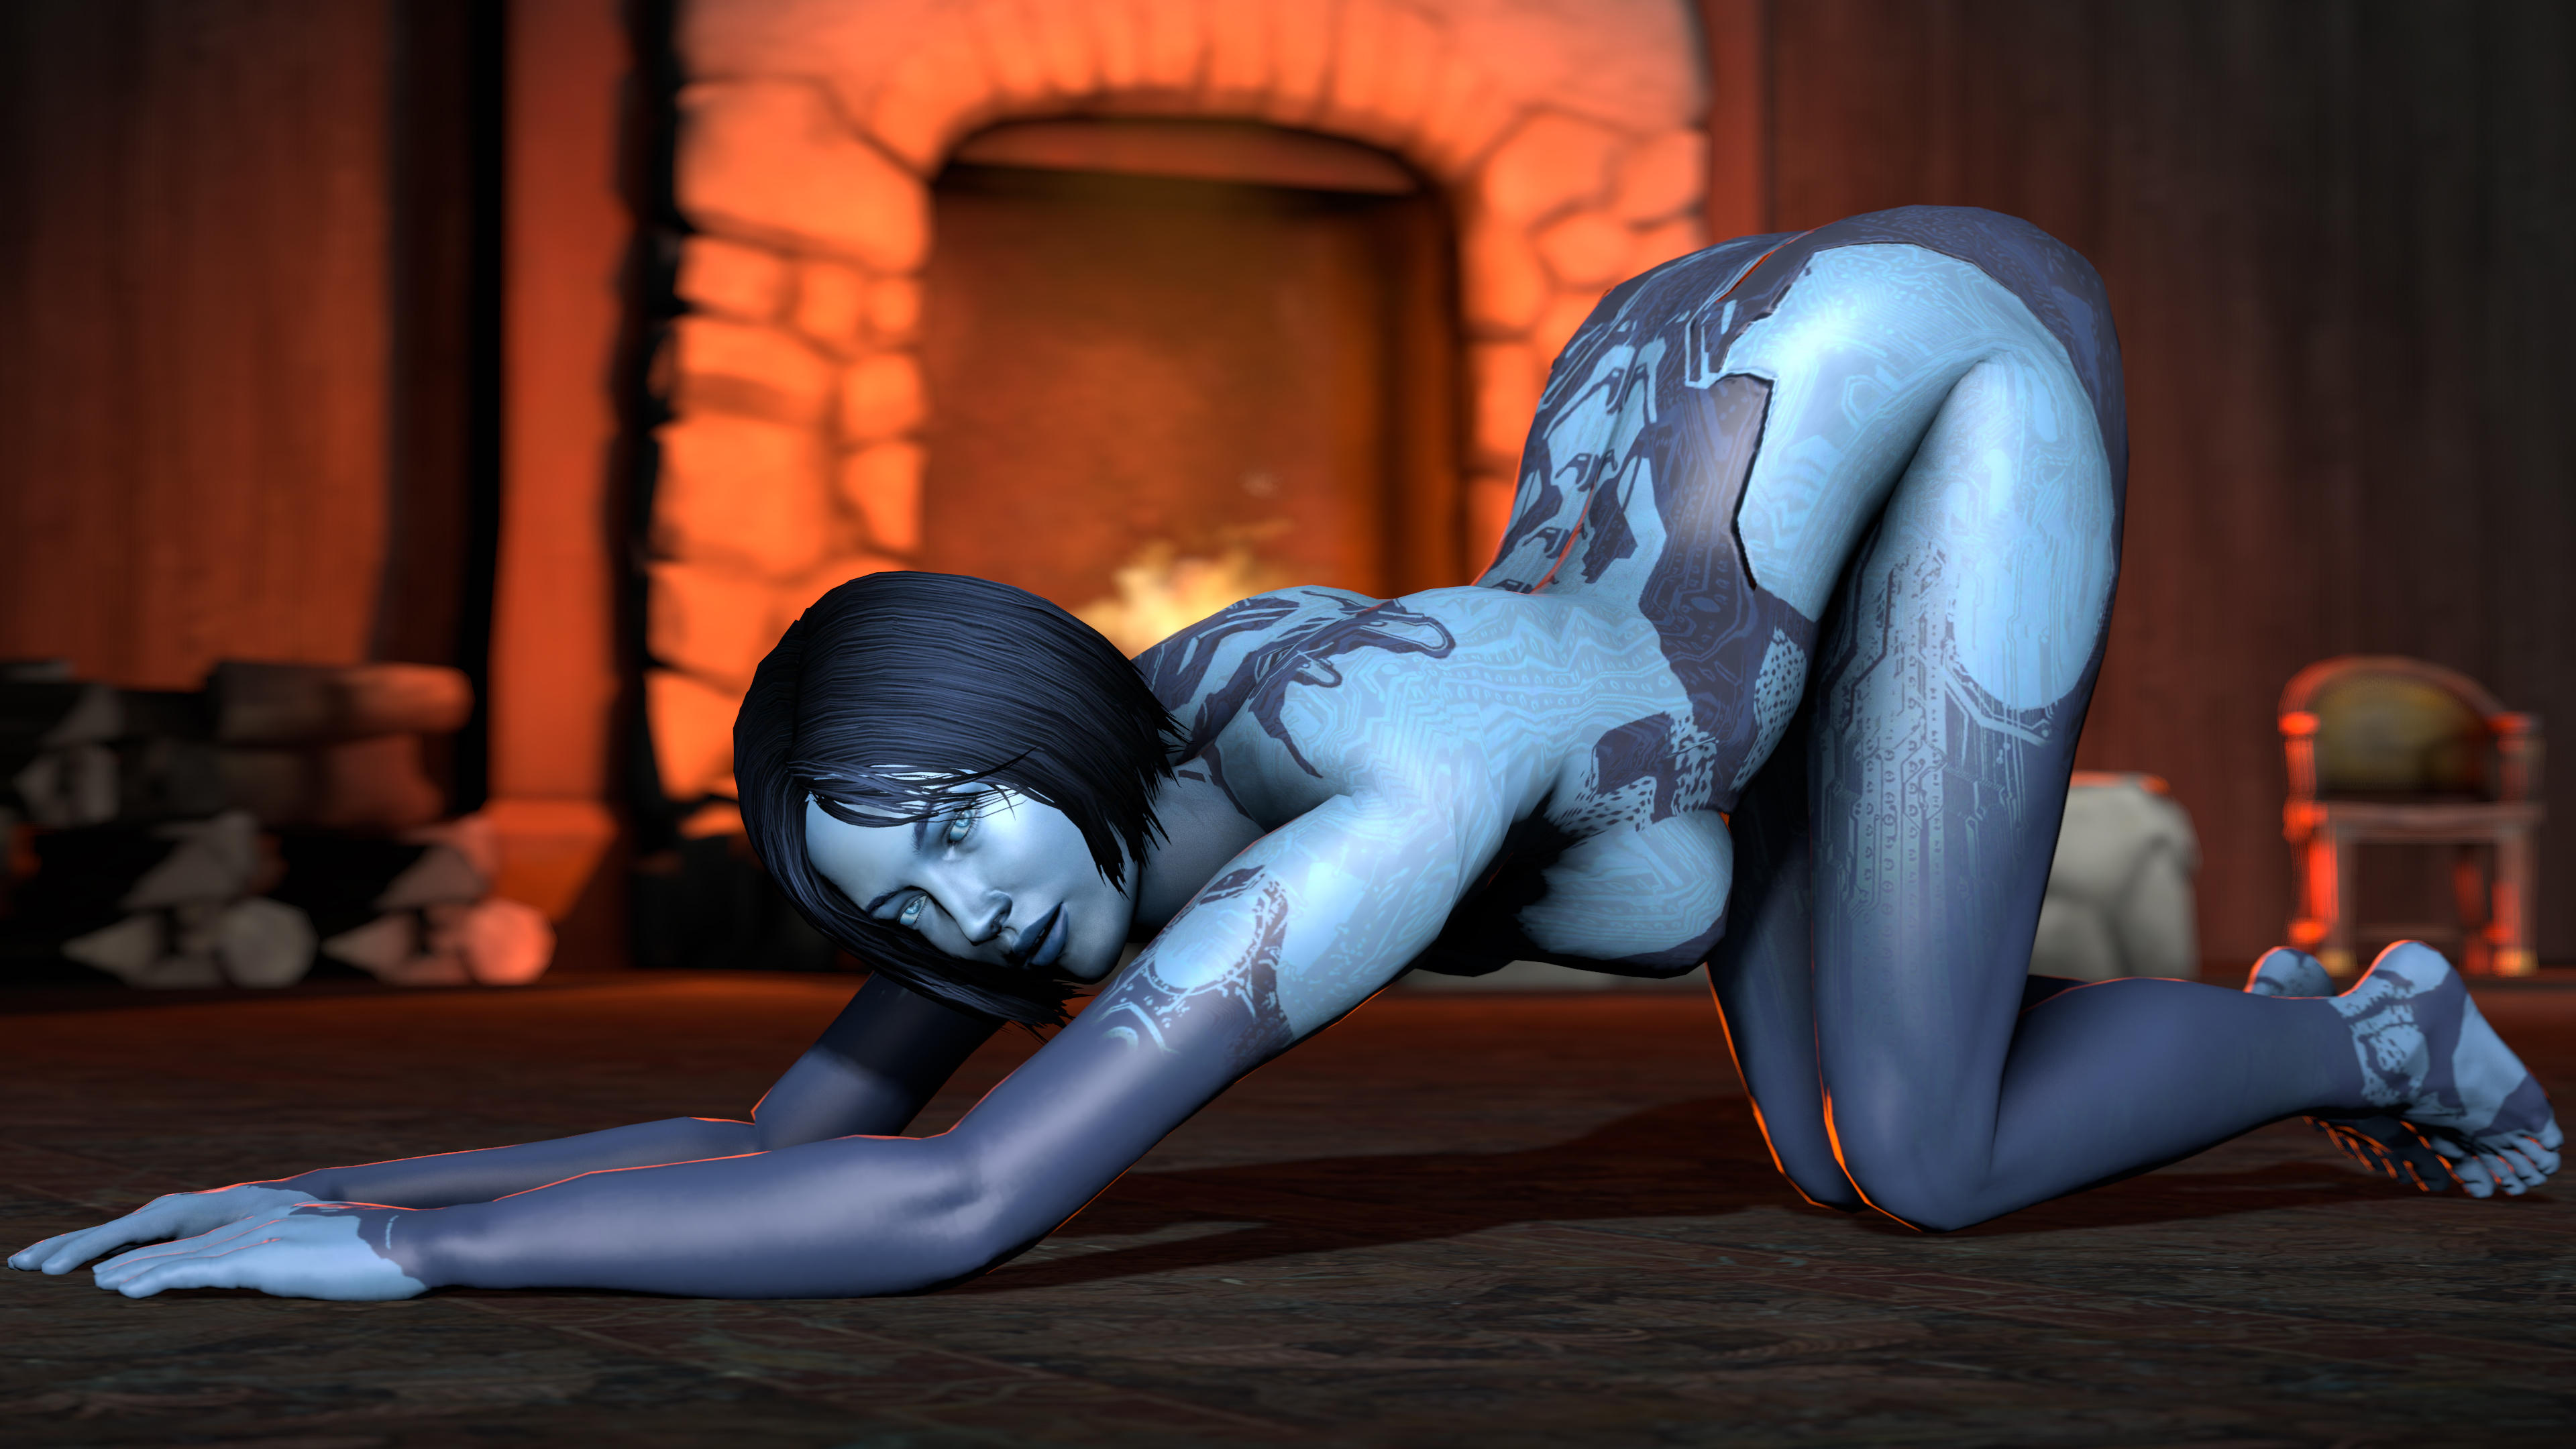 Cortana porn game erotic gallery